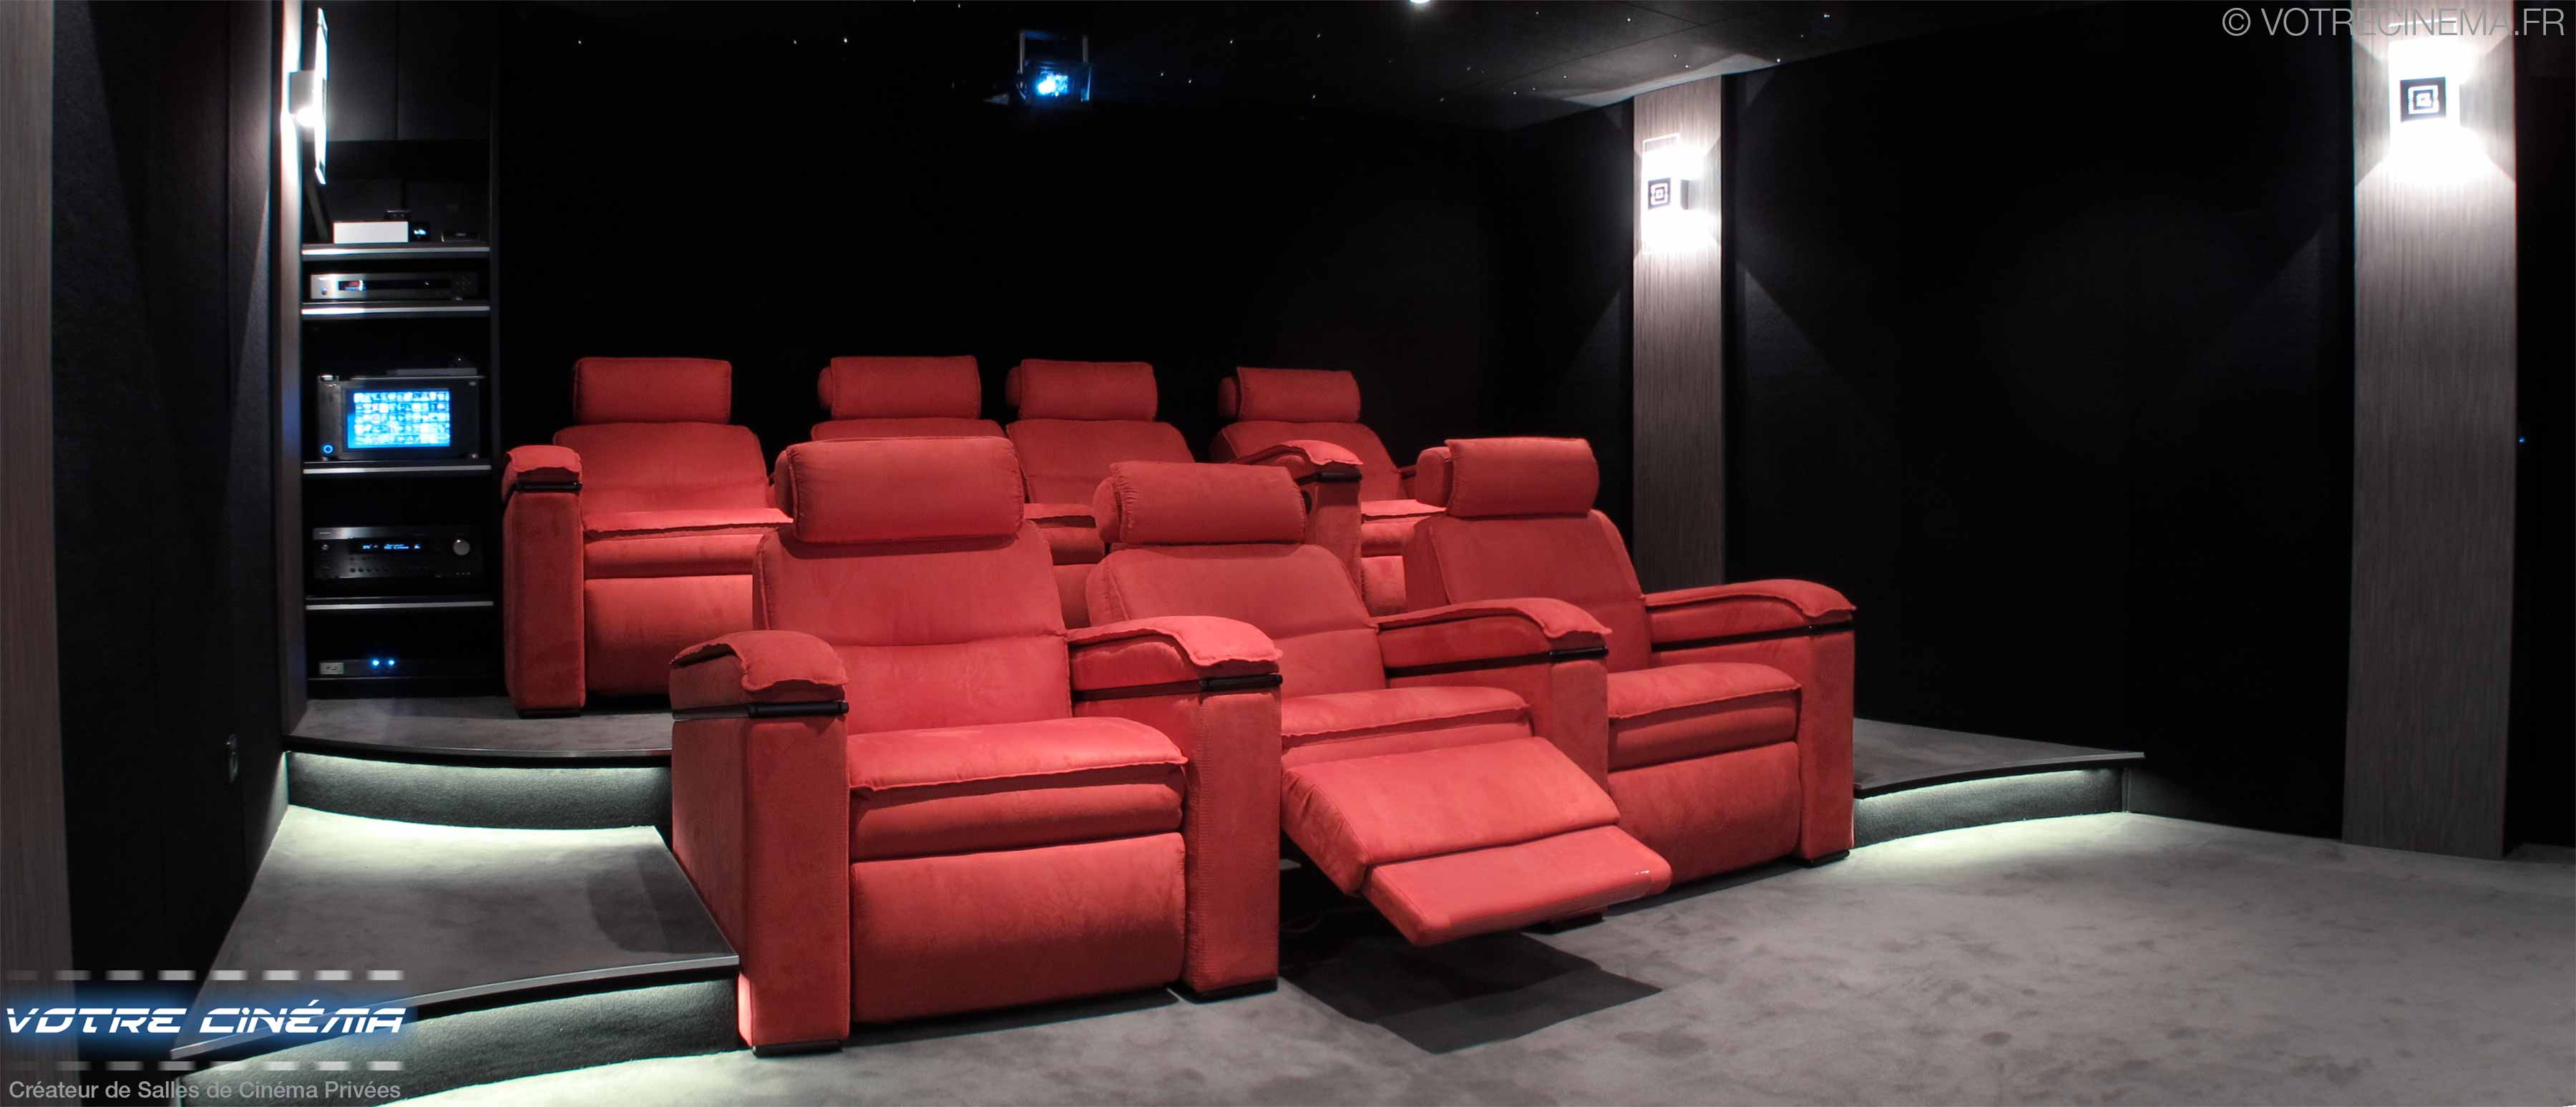 Salon-de-Provence – 8m²  Votre Cinema